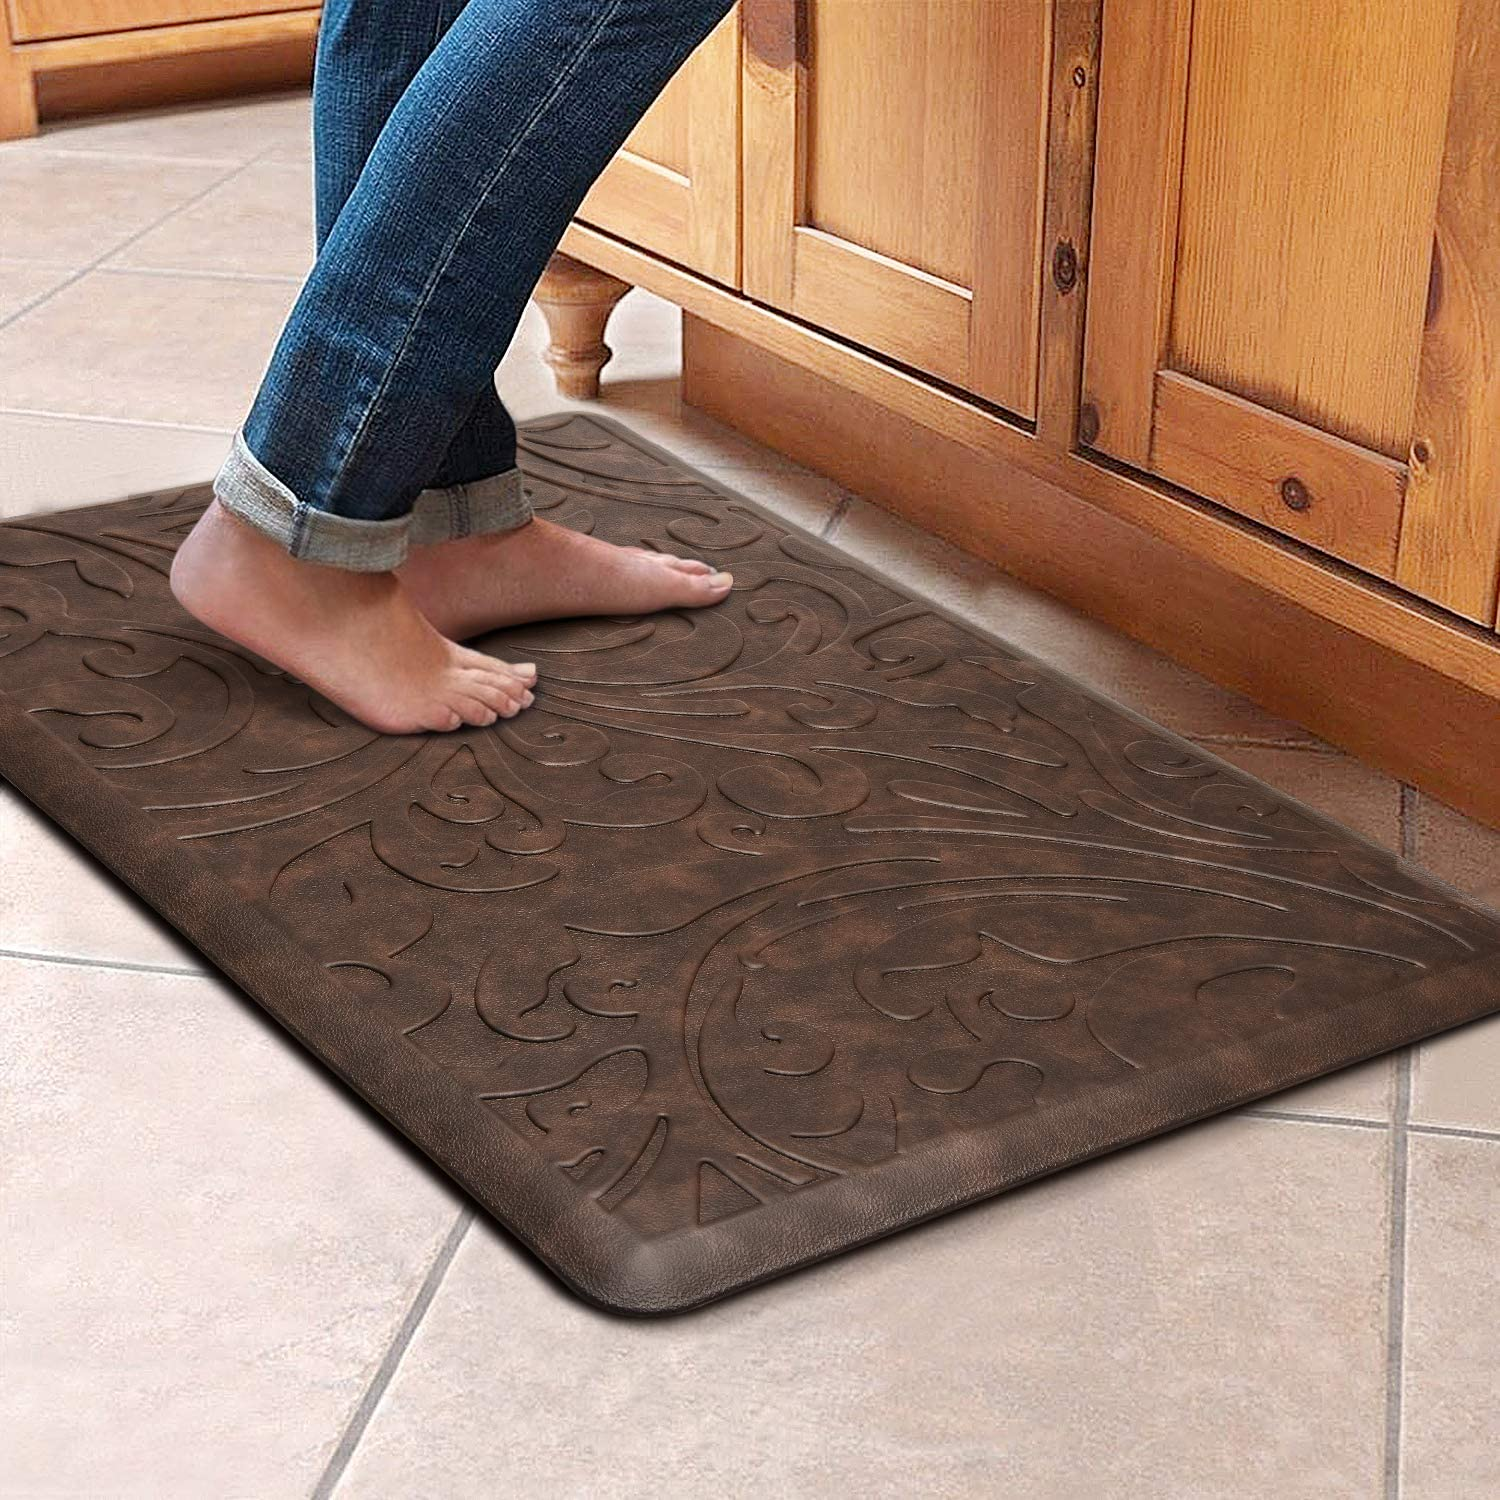 "KMAT Kitchen Mat Cushioned Anti-Fatigue Floor Mat Waterproof Non-Slip Standing Mat Ergonomic Comfort Floor Mat Rug for Home,Office,Sink,Laundry,Desk 17.3"" (W) x 28""(L),Brown"